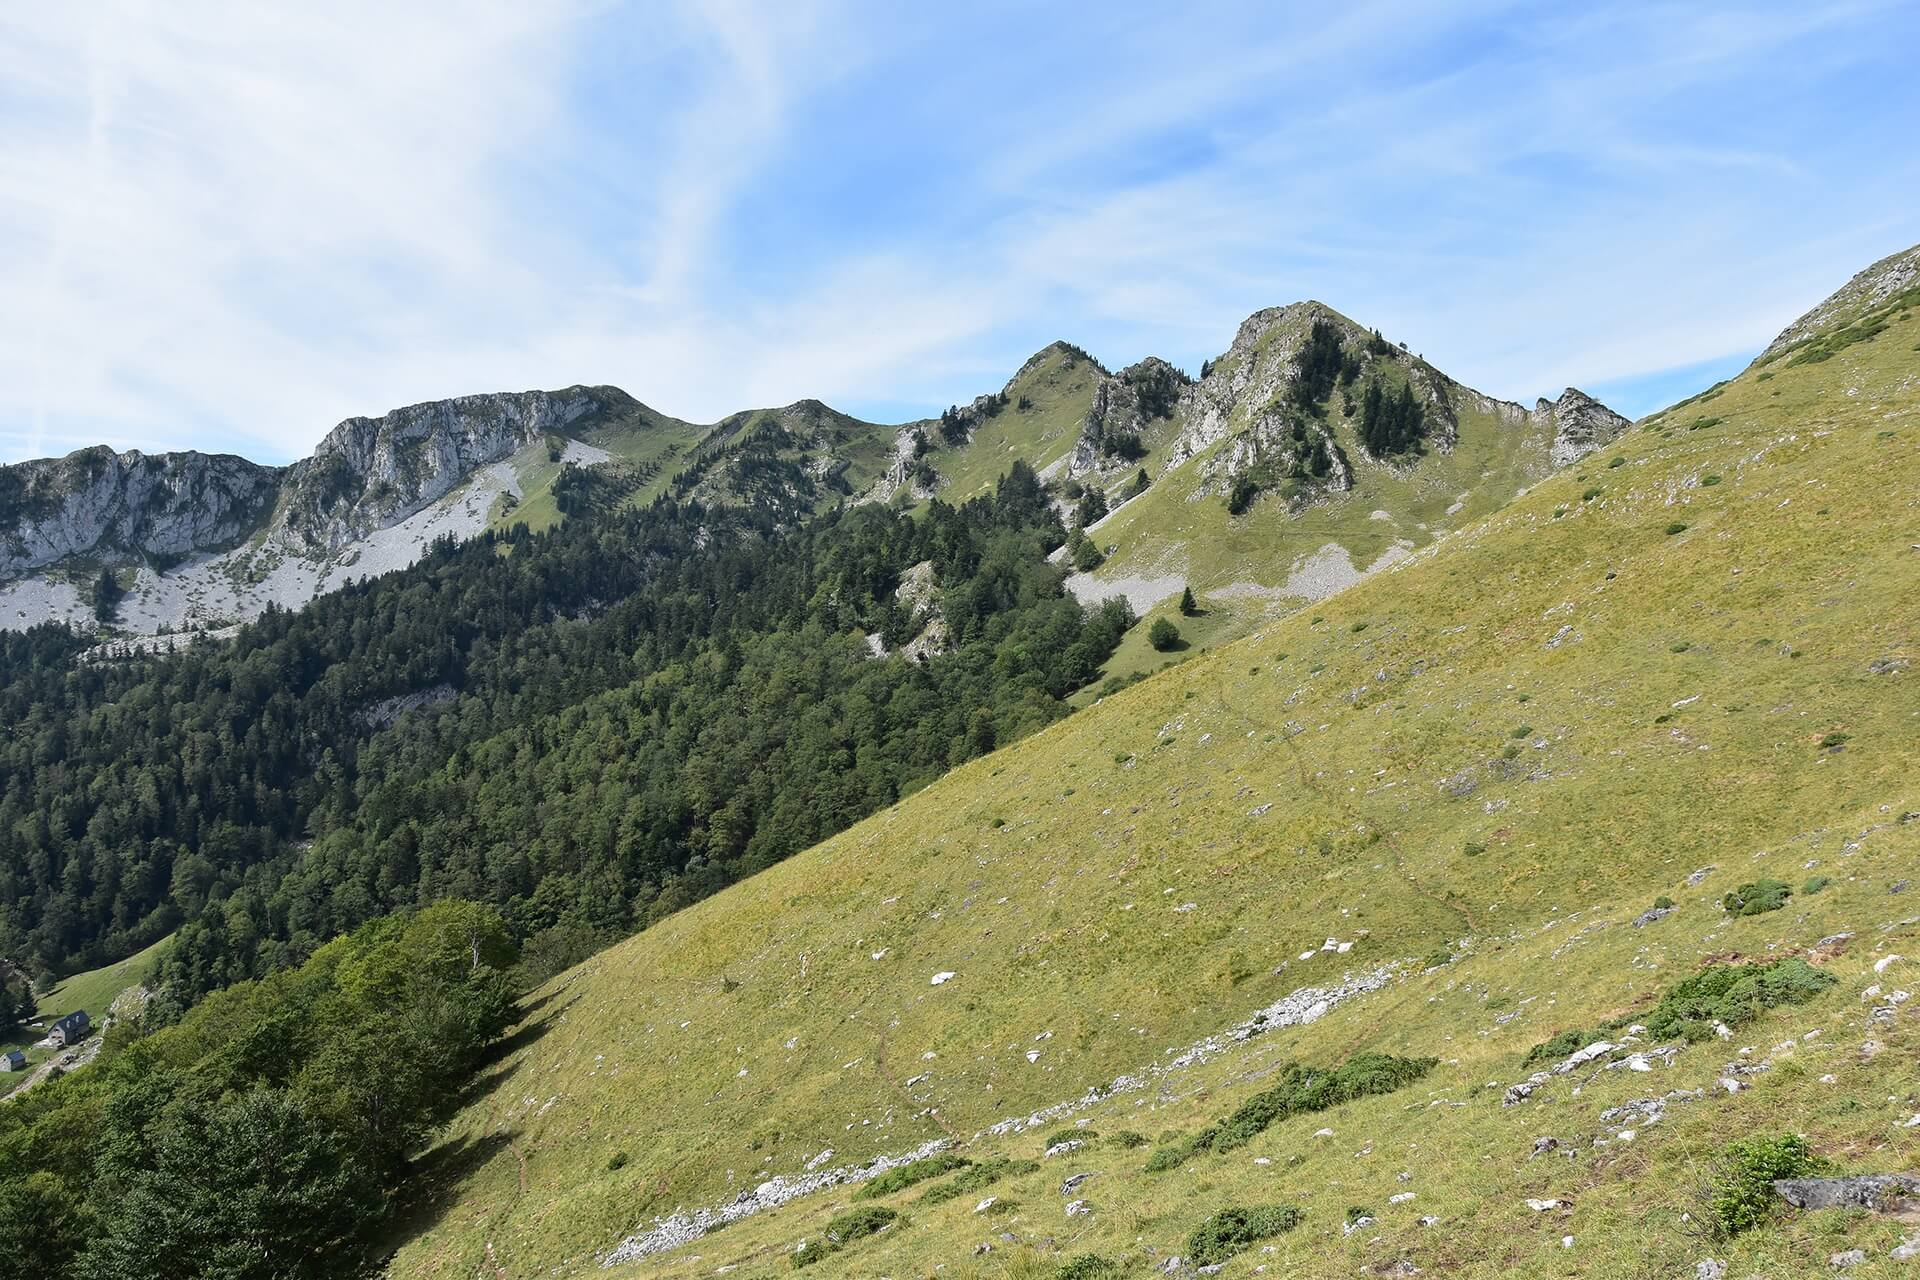 Cagire Loop trail in French Pyrenees